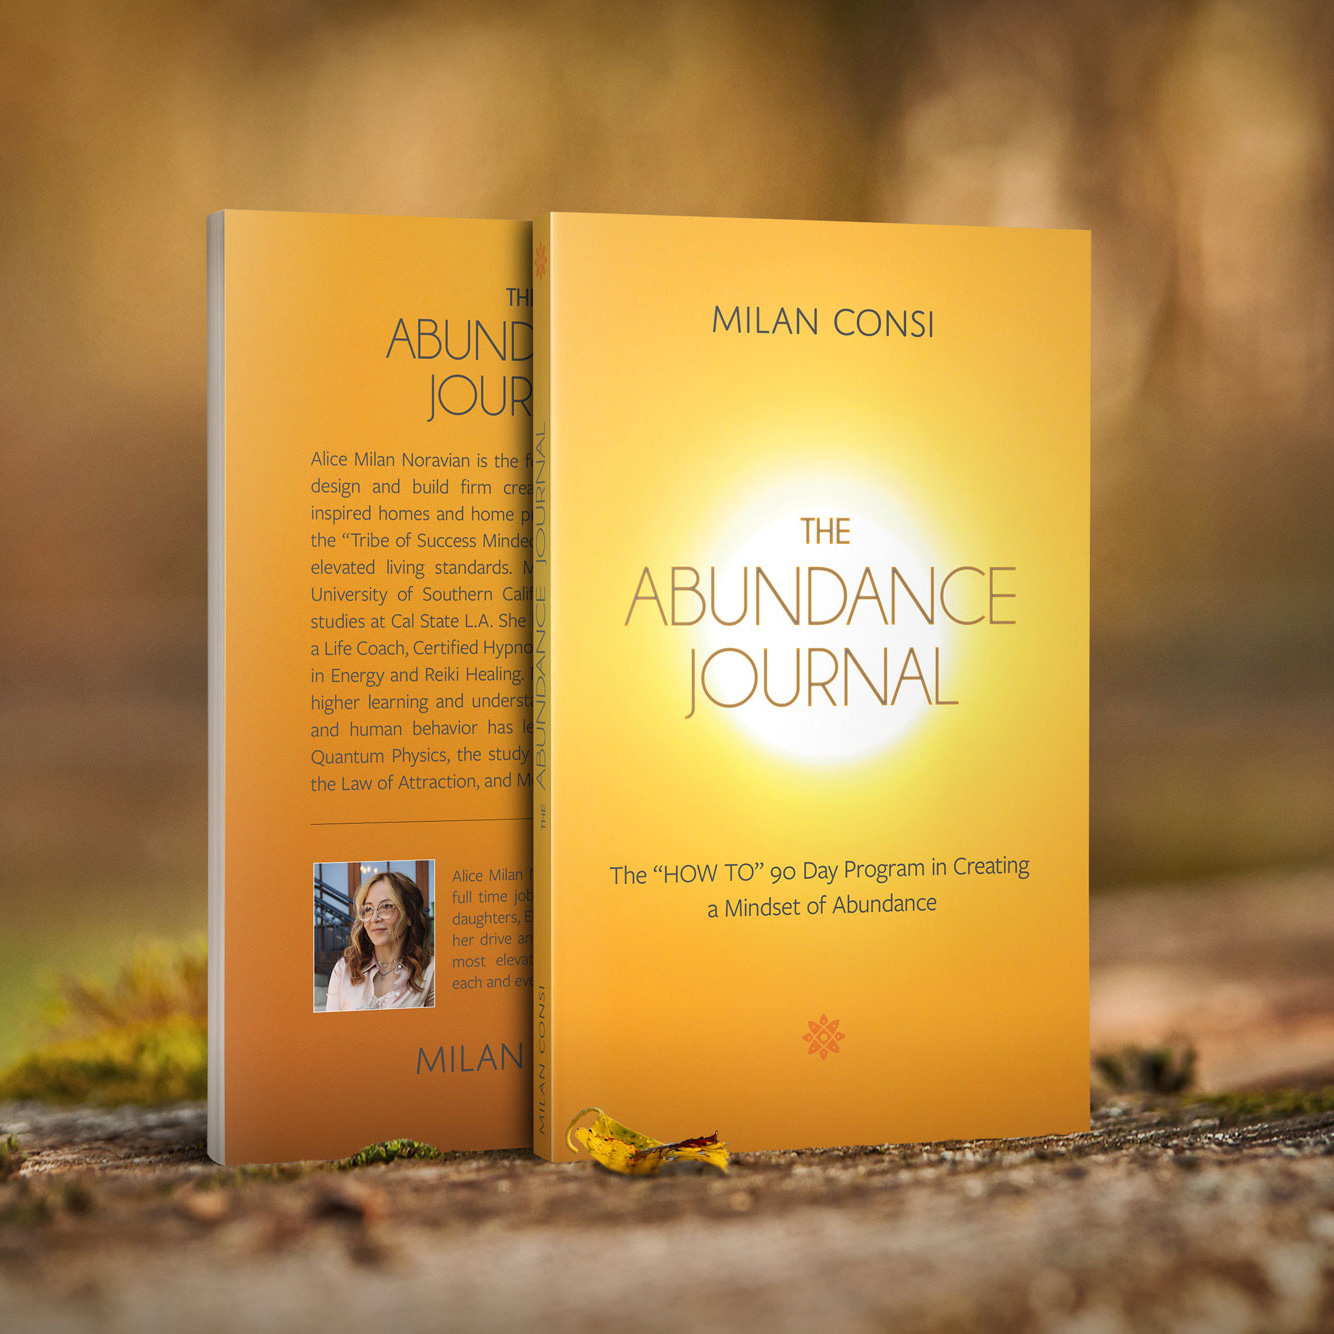 The Abundance Journal